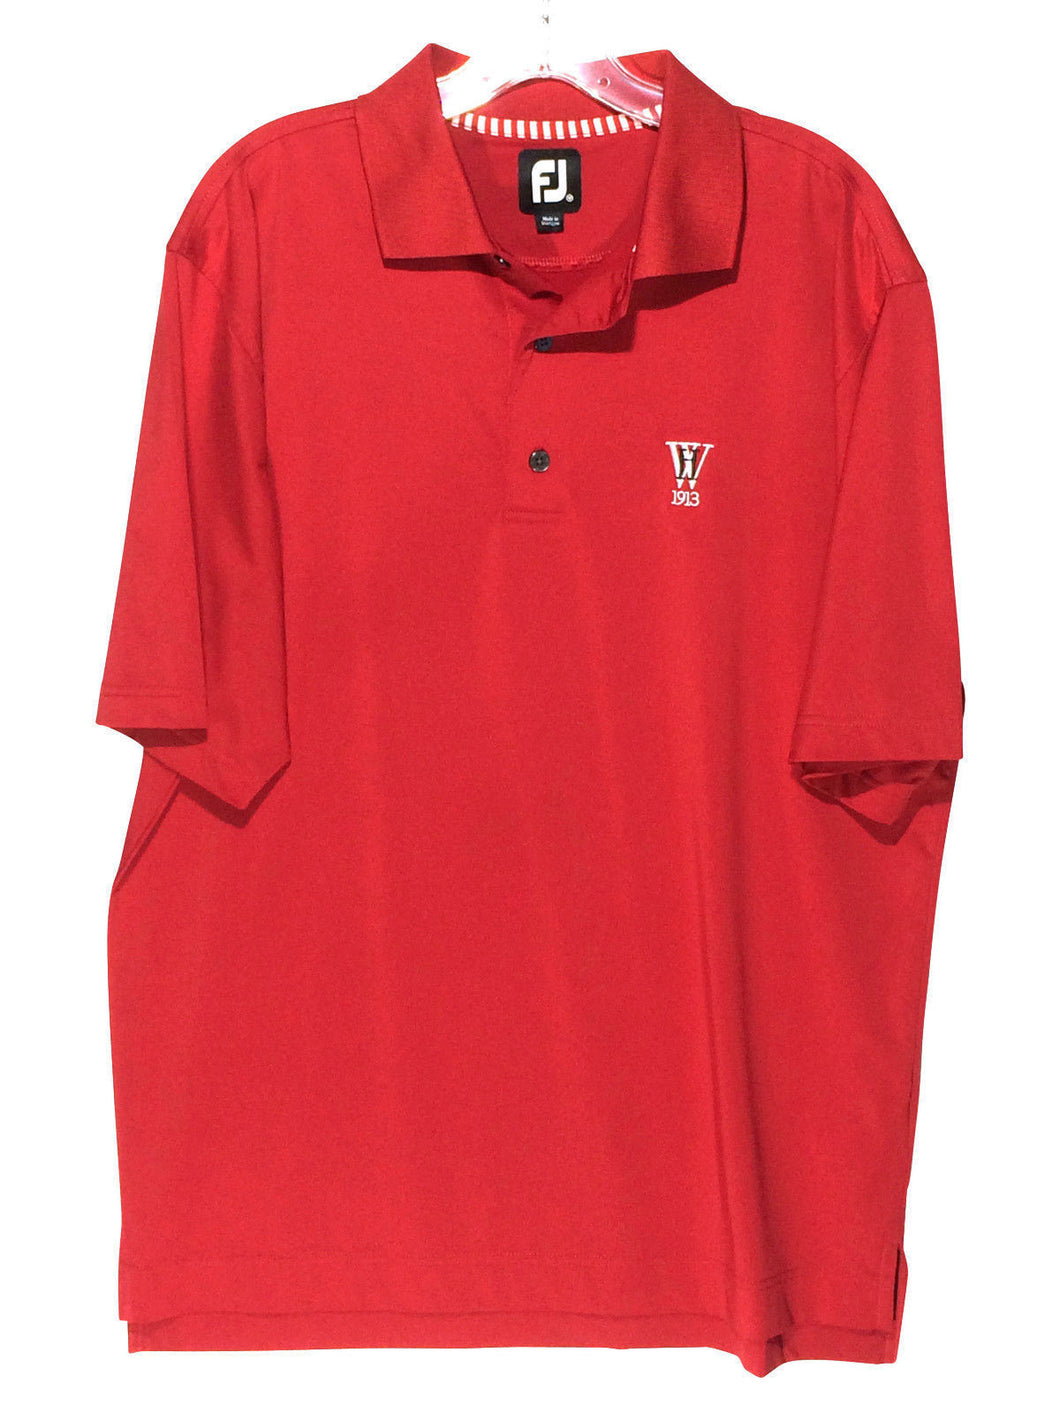 Footjoy FJ Red Westchester Hills Golf Club Lightweight Polo Shirt Men's Medium M - Preowned - FunkyCrap Boutique